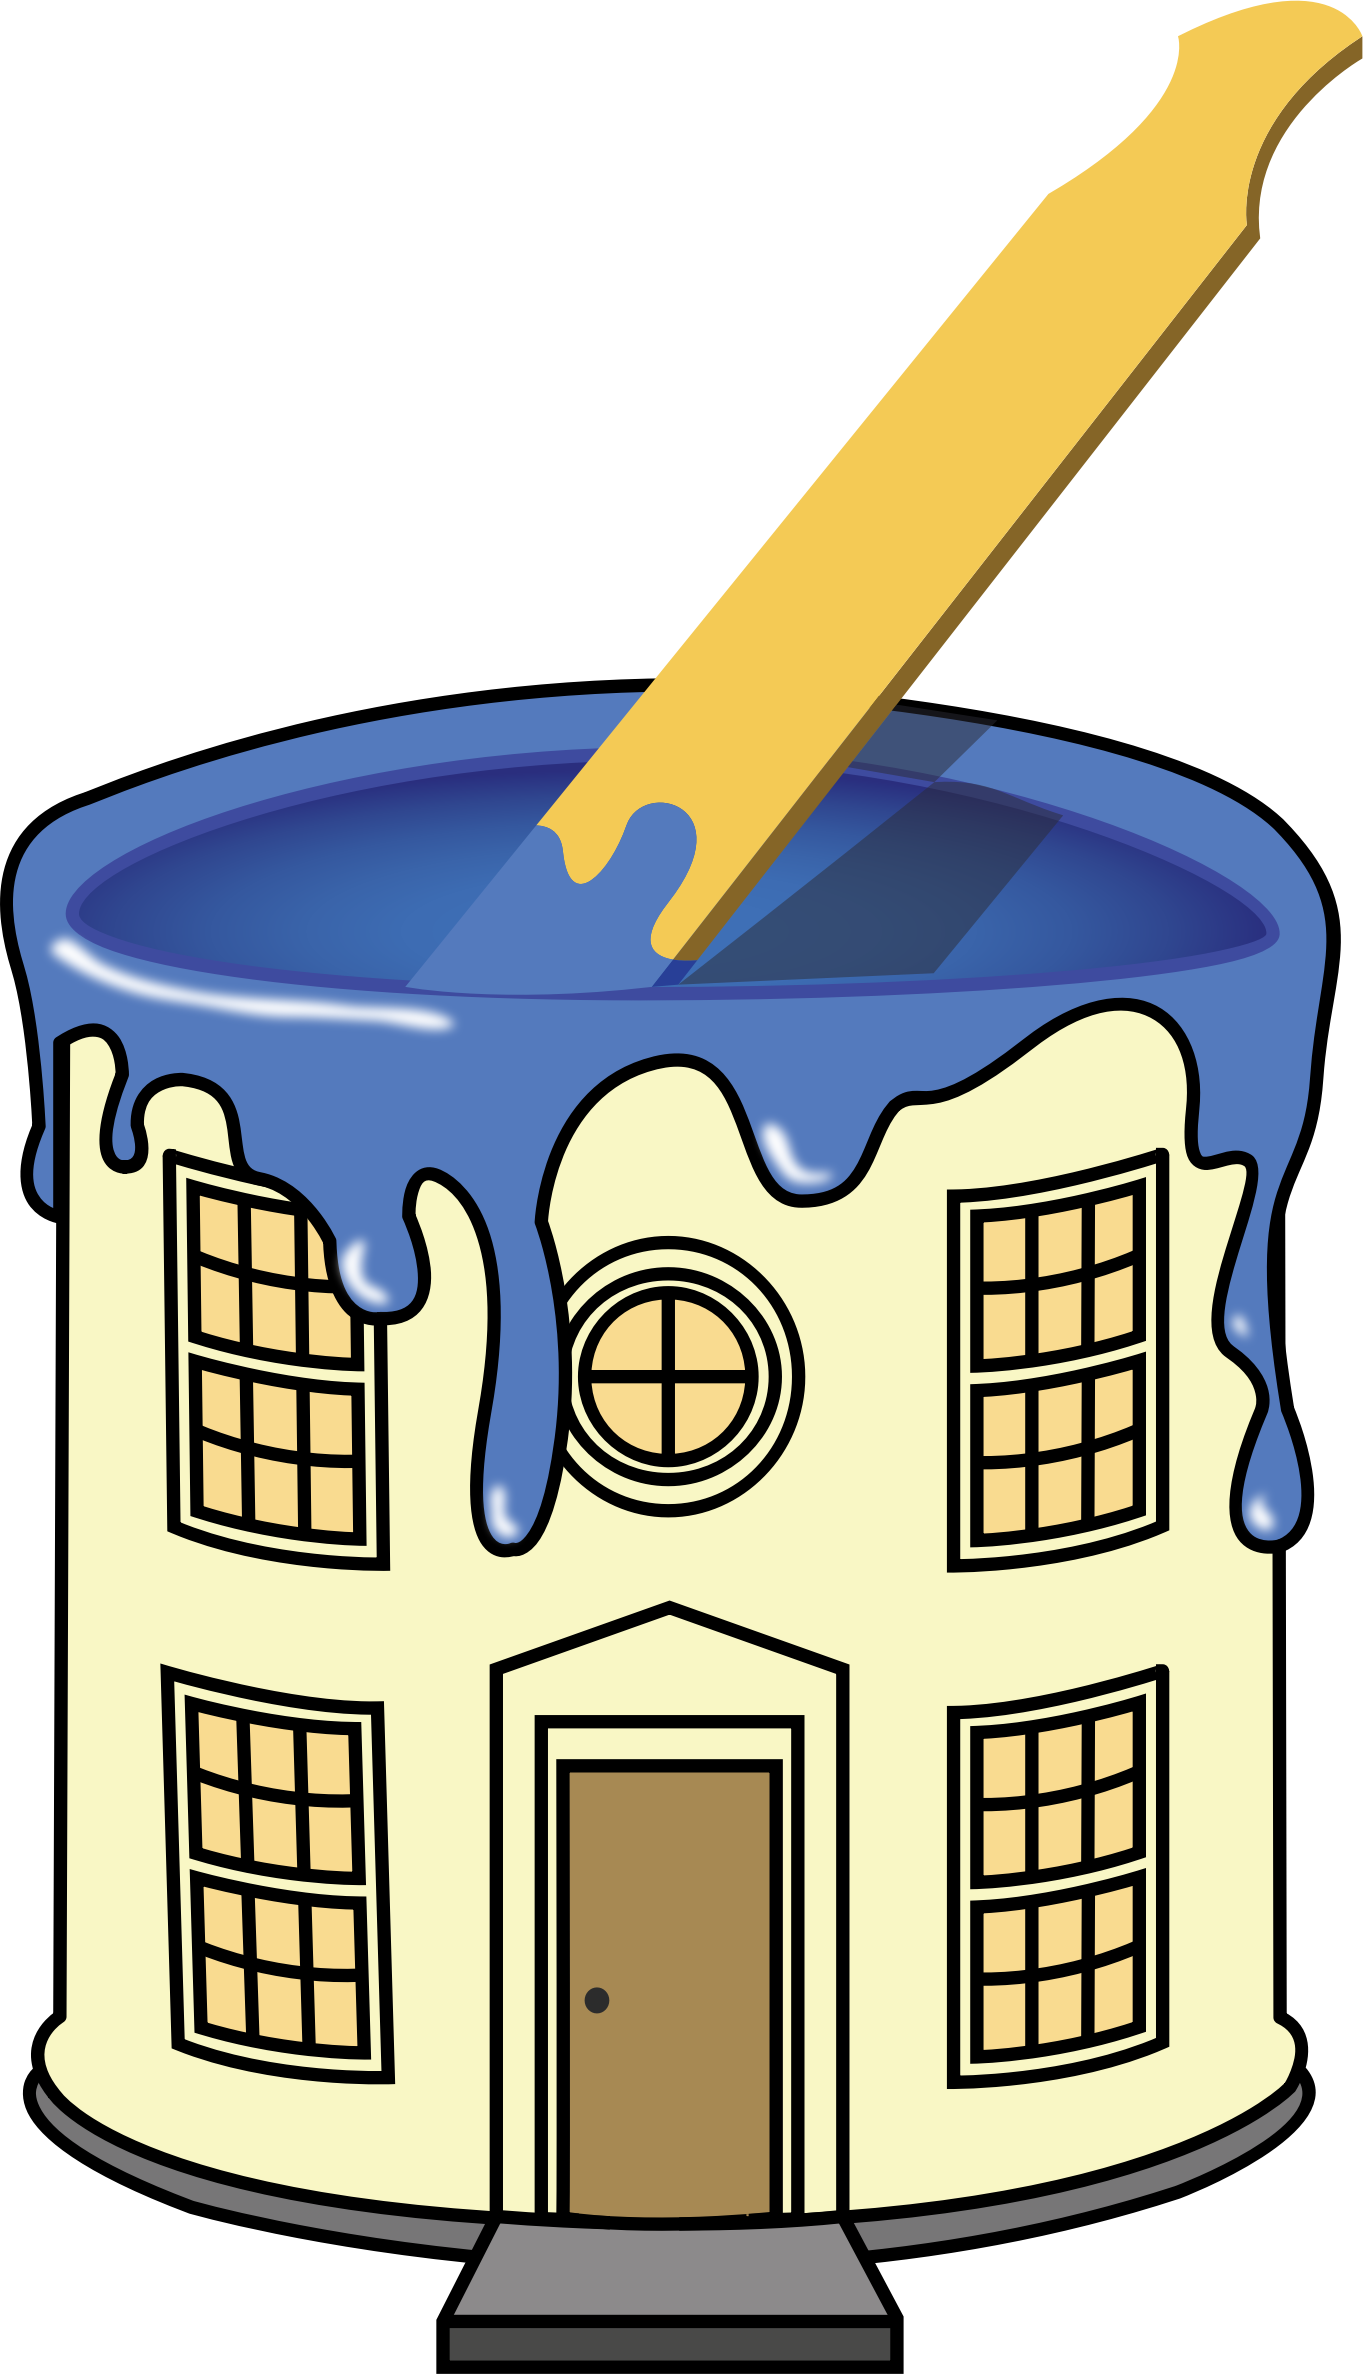 Clipart painting a house yellow graphic stock Clipart - house paint graphic stock